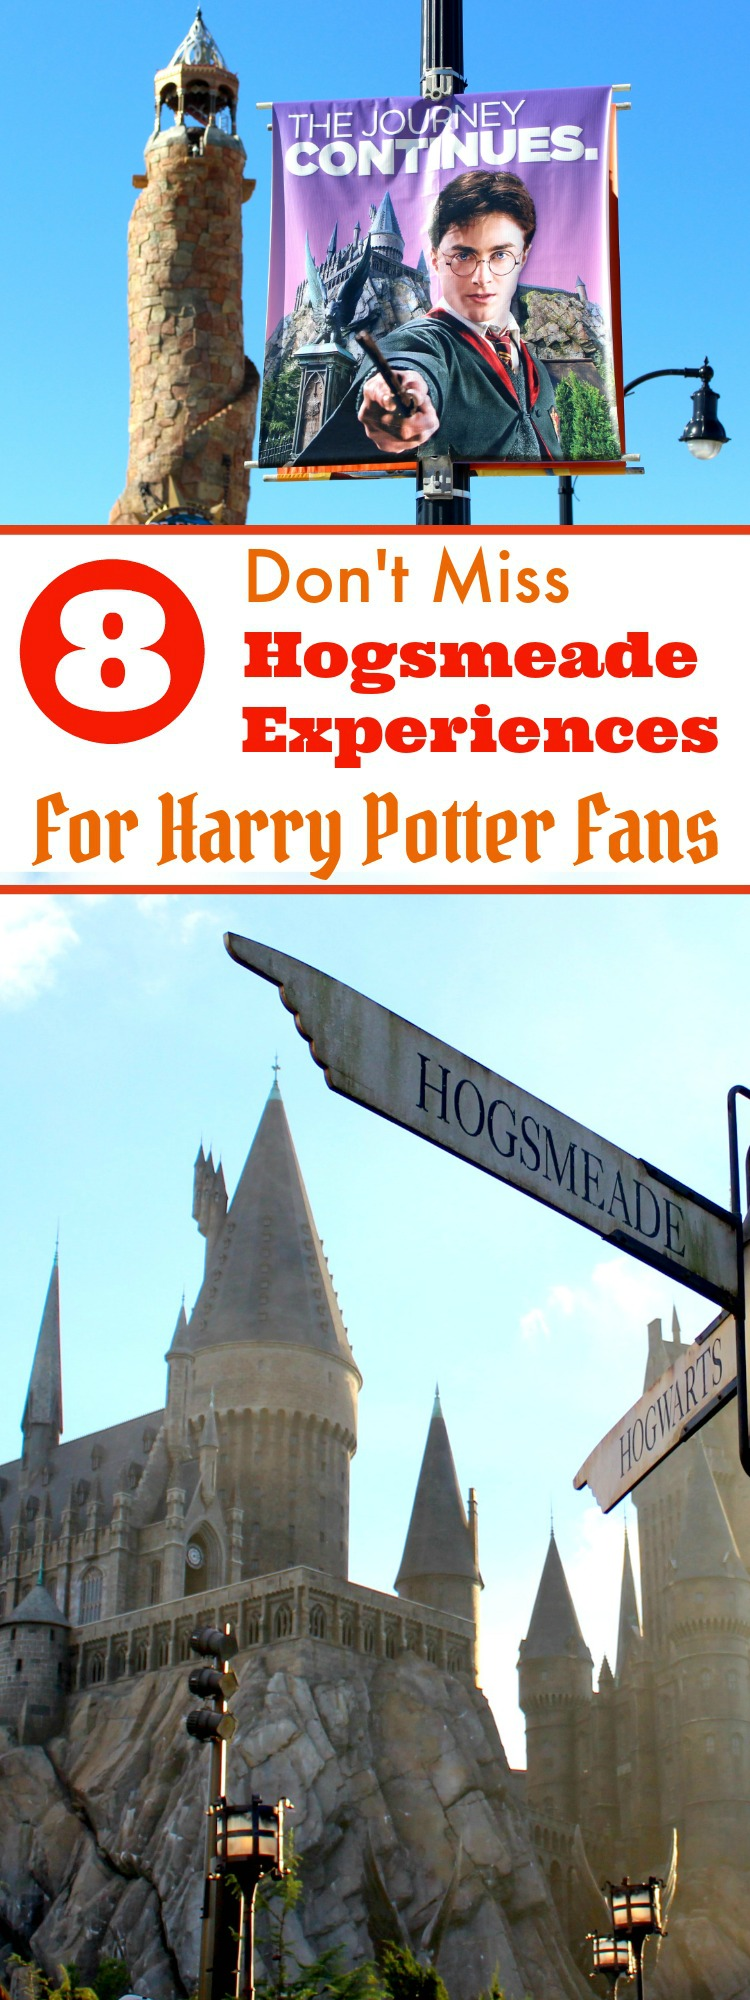 The Wizarding World Of Harry Potter at Universal Orlando Resort is a must-see for Harry Potter fans. These are just a few of the Hogsmeade experiences that can't be missed!